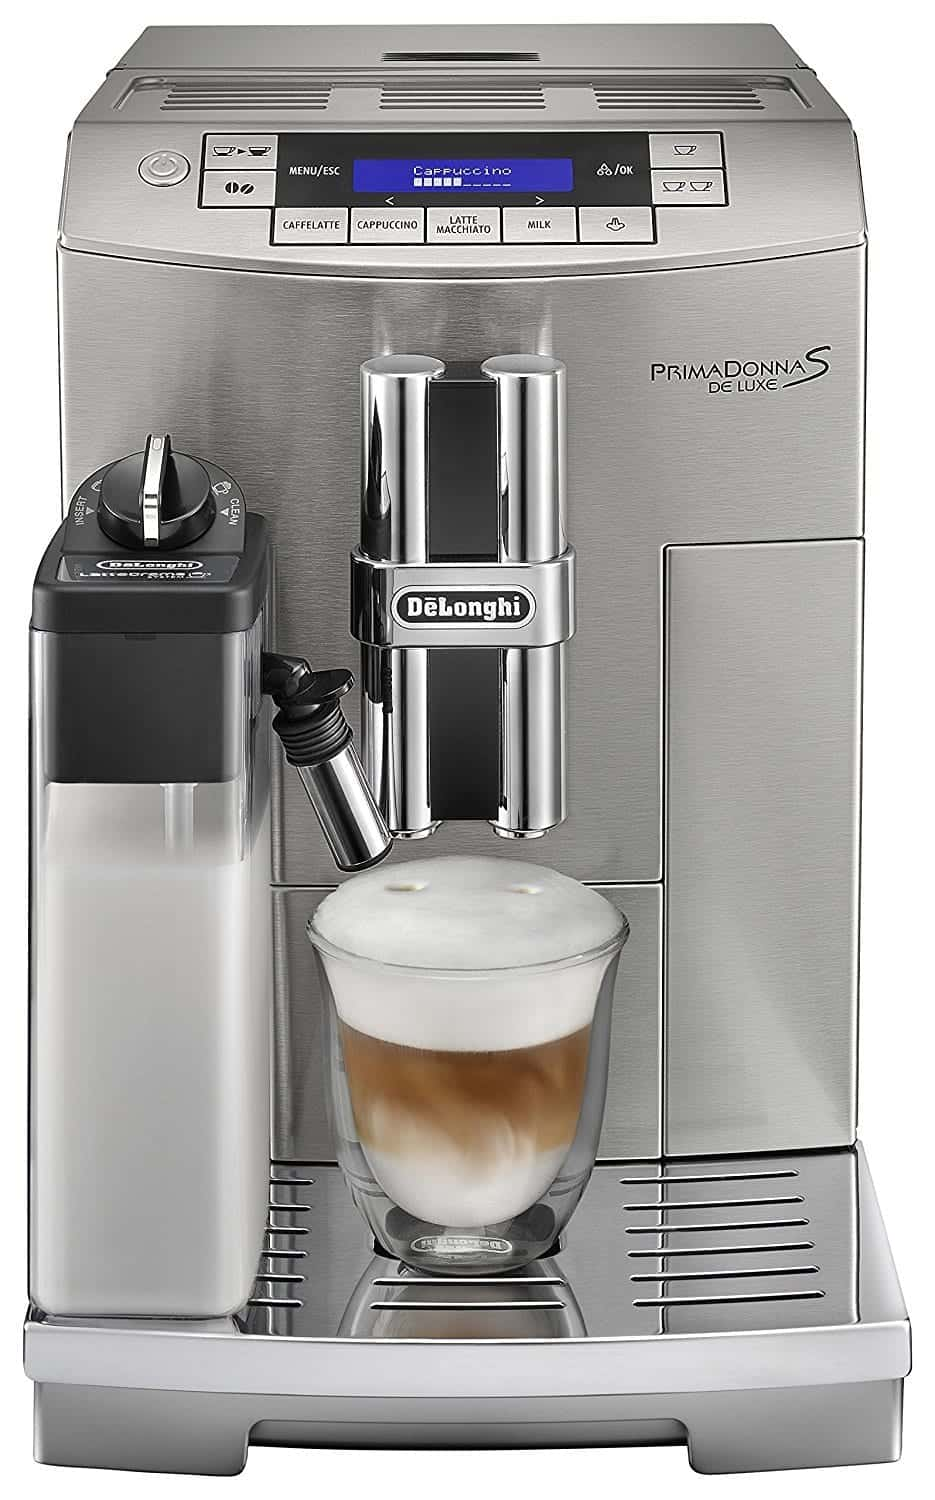 DeLonghi Prima Donna S Super Automatic Espresso Machine